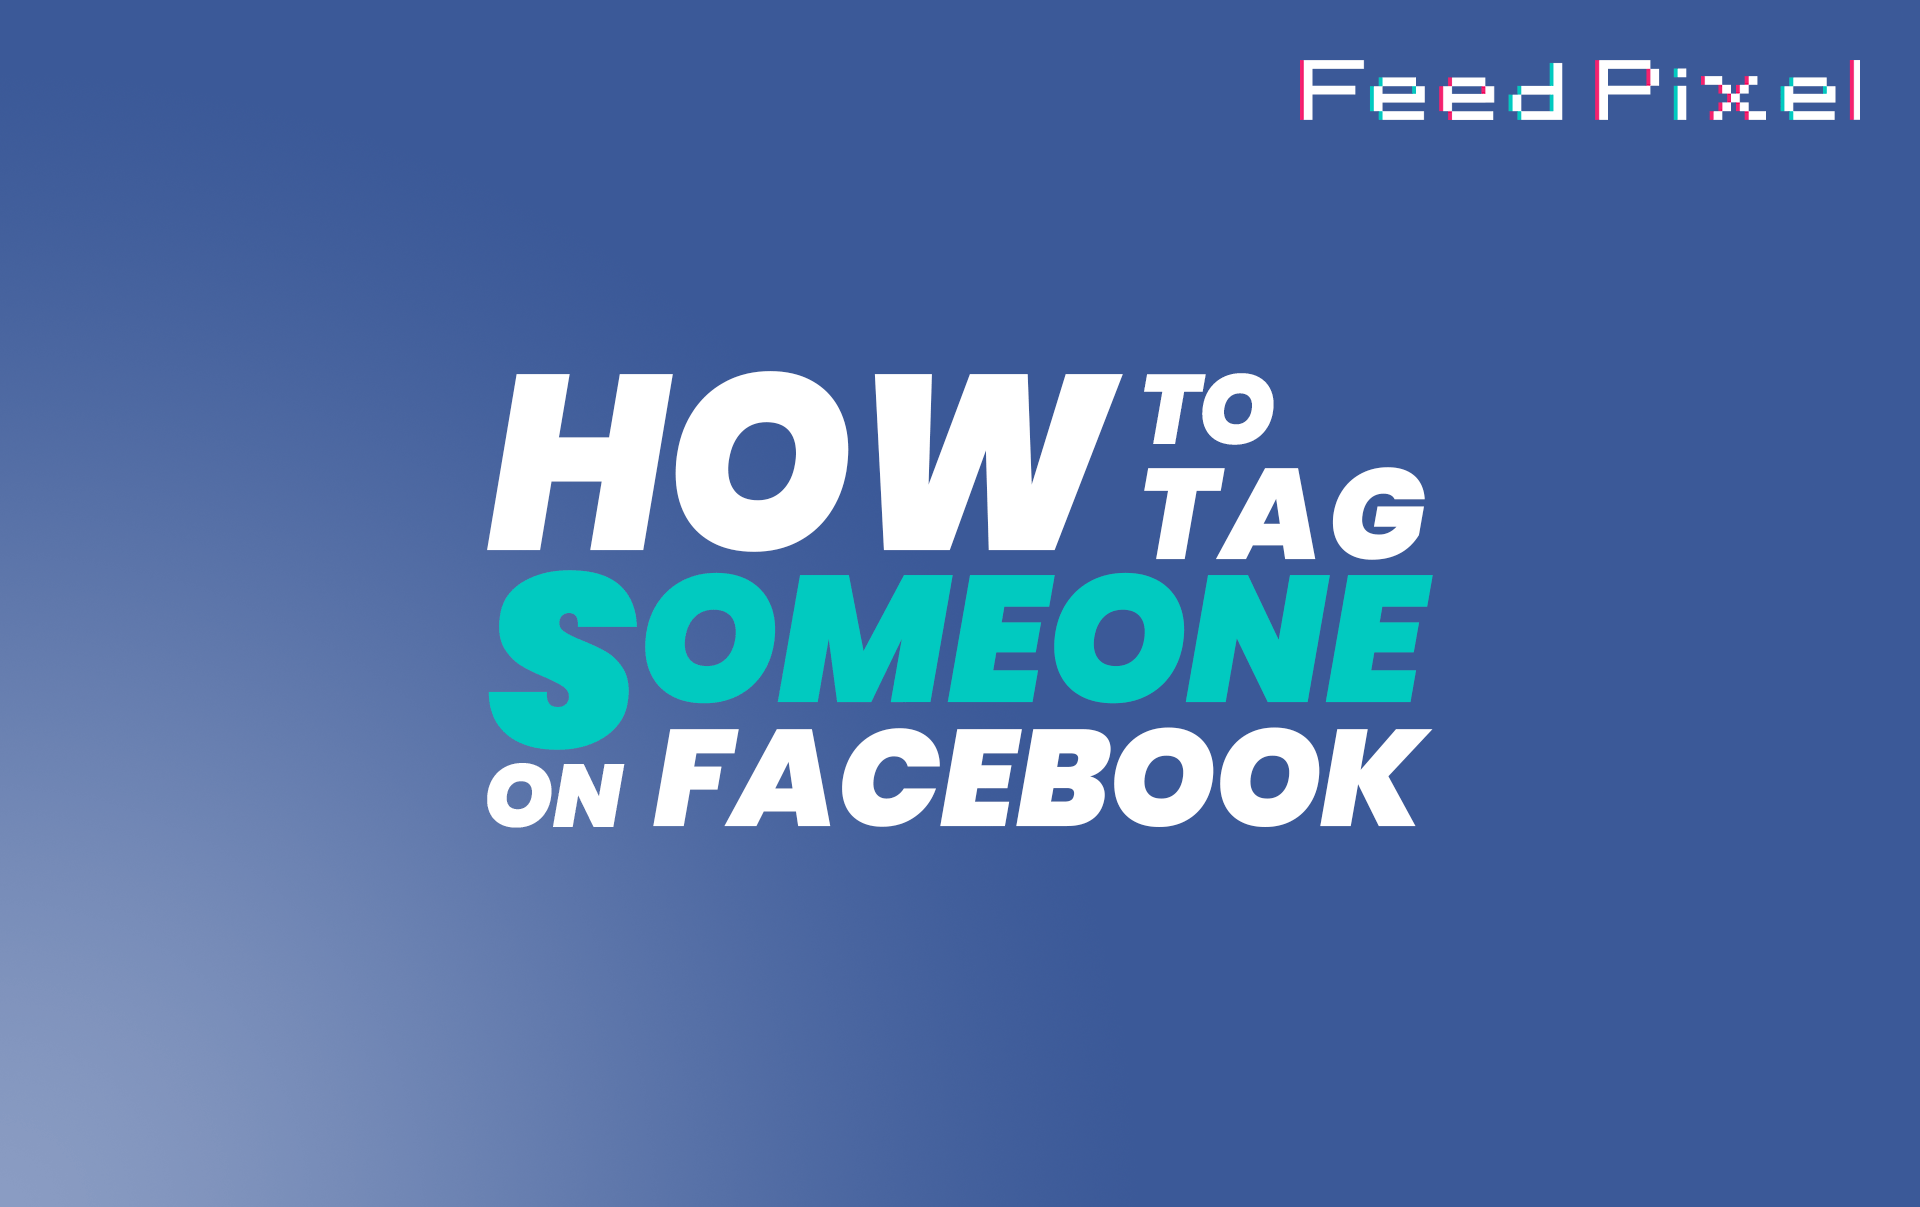 How To Tag Someone On Facebook?